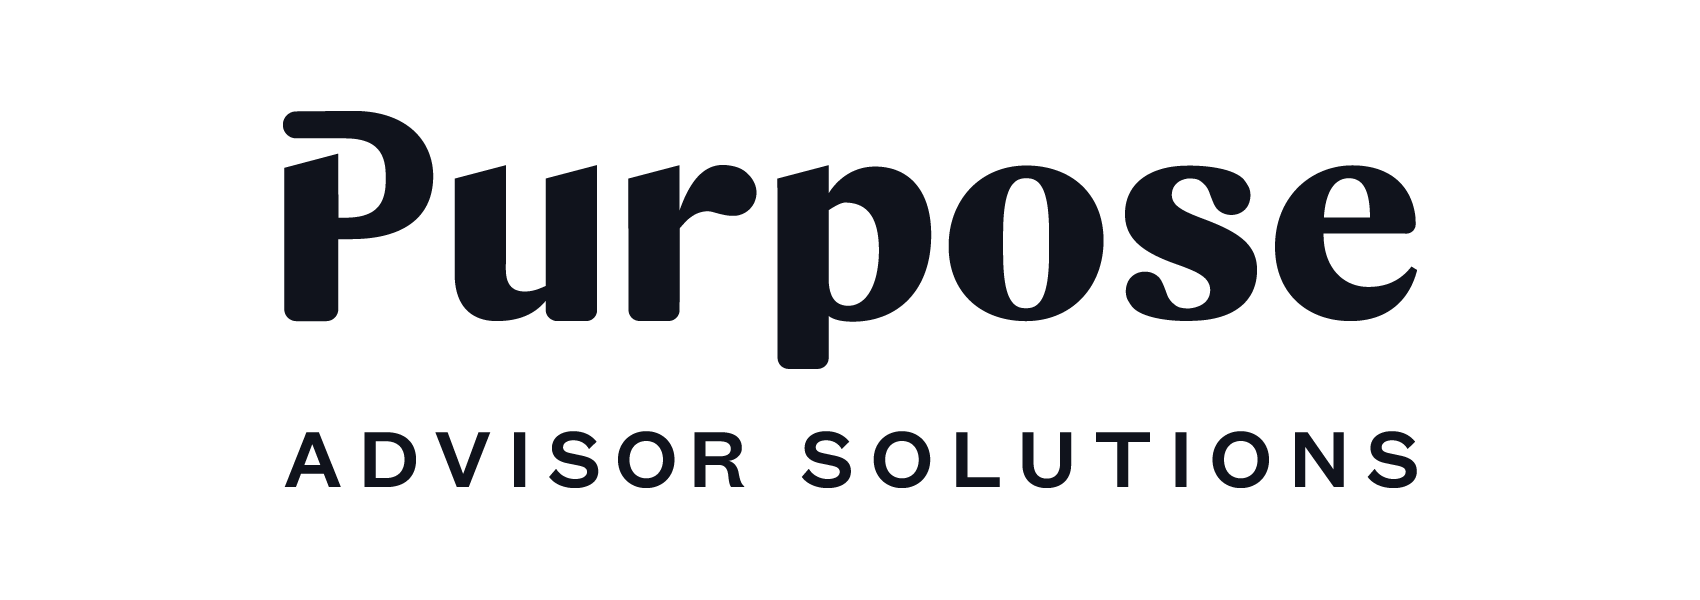 Wealthsimple for Advisors Joining Purpose Advisor Solutions to Create Leading Canadian Independent Wealth Platform